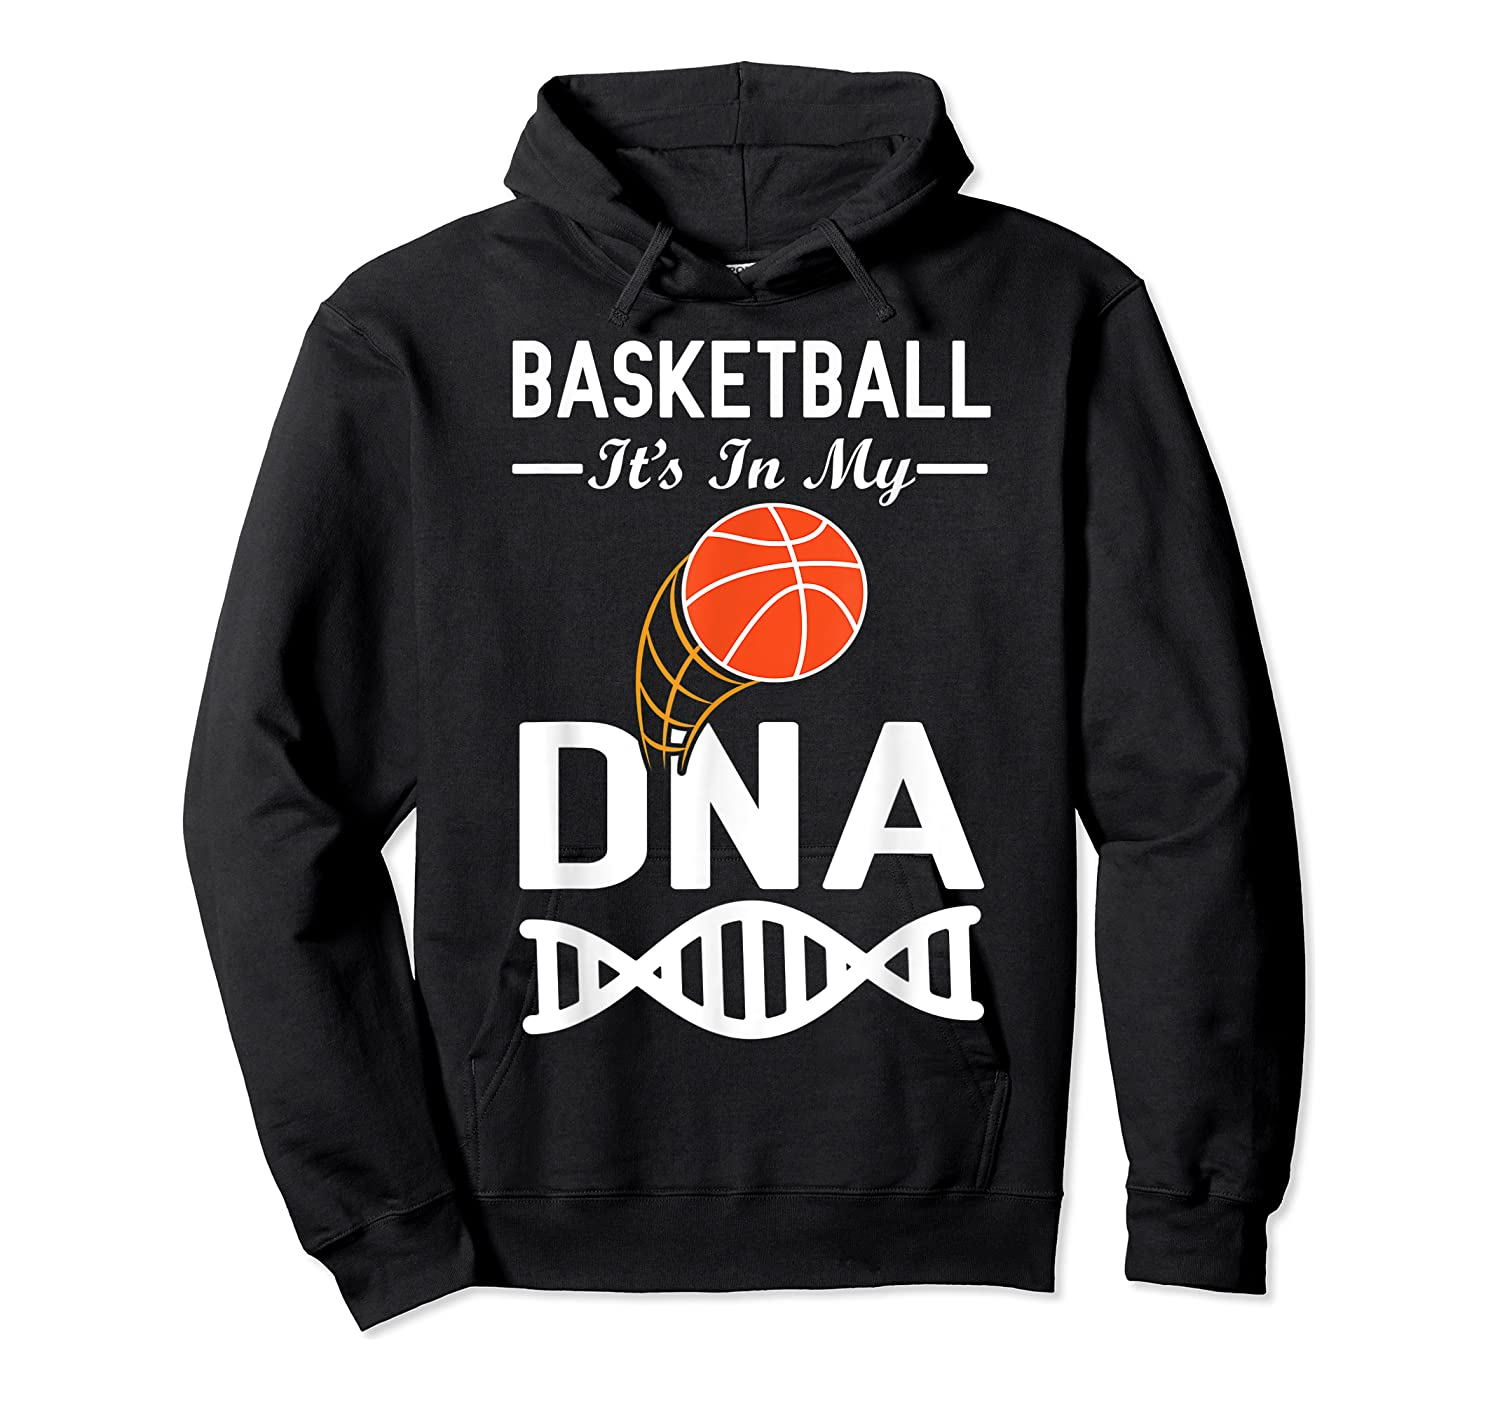 Sports Lover Tees - Basketball It's In My Dna T-shirt Unisex Pullover Hoodie